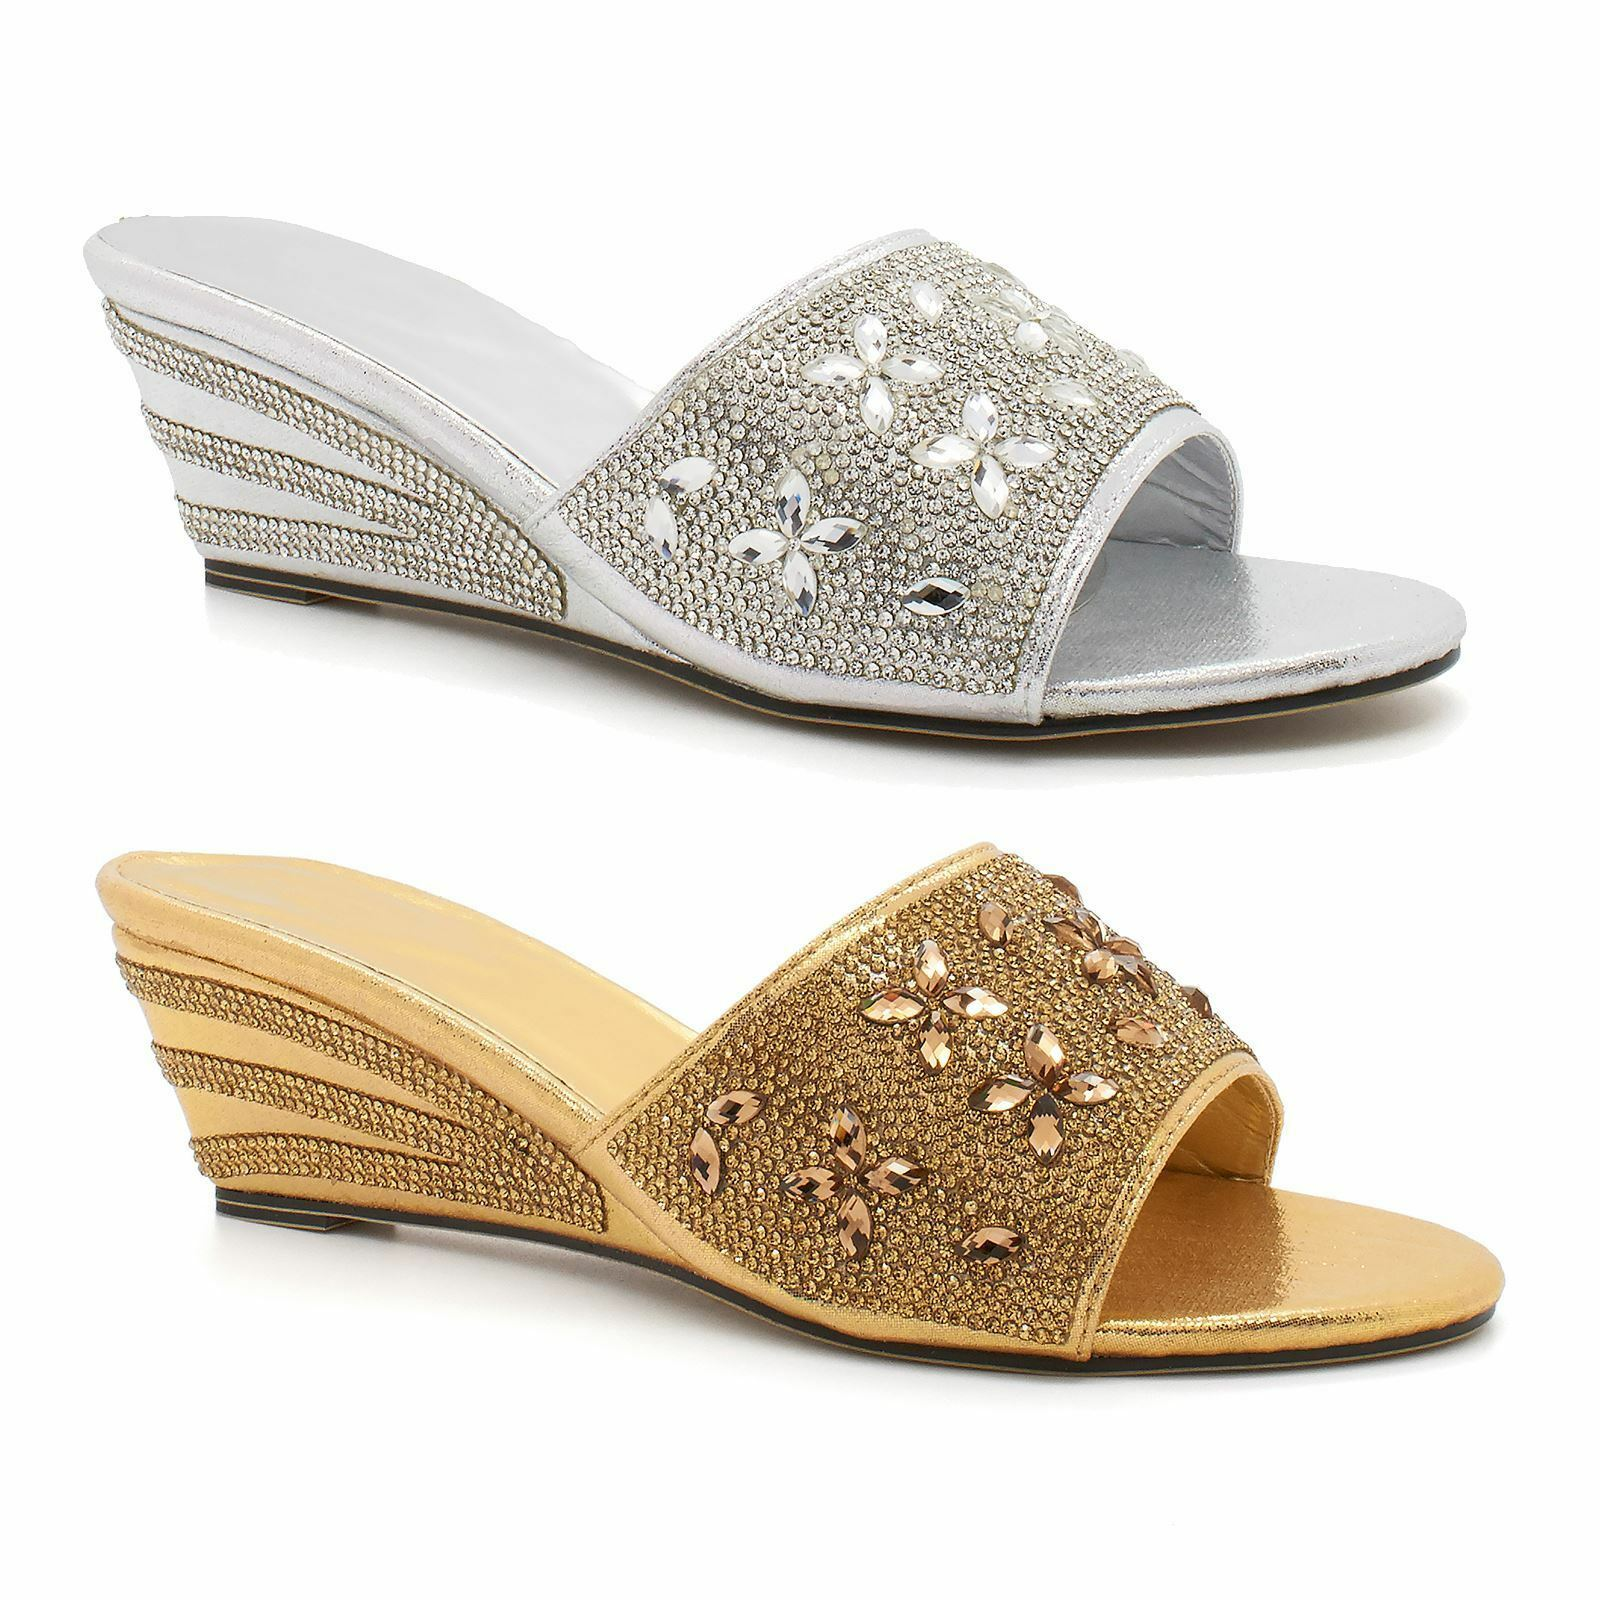 Beach Party Sandals Size Ladies Womens Heel Diamante Holiday Wedges Slip On 5-10